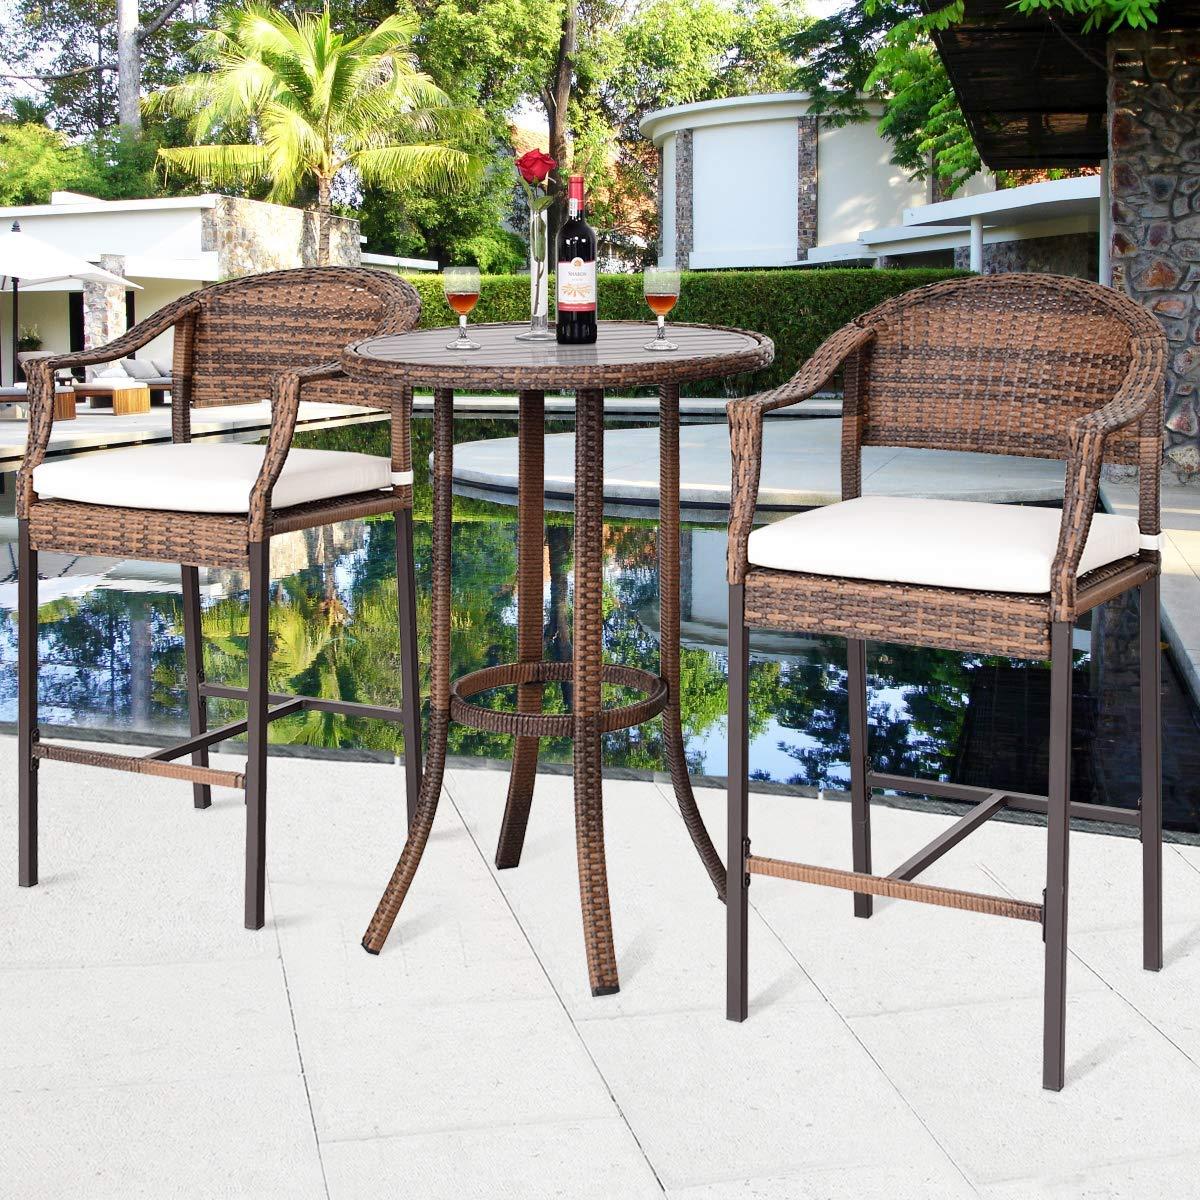 Amazon com tangkula patio bar set 3 piece wicker rattan all weahter durable poolside balcony garden furniture bar height outdoor table and chairs set